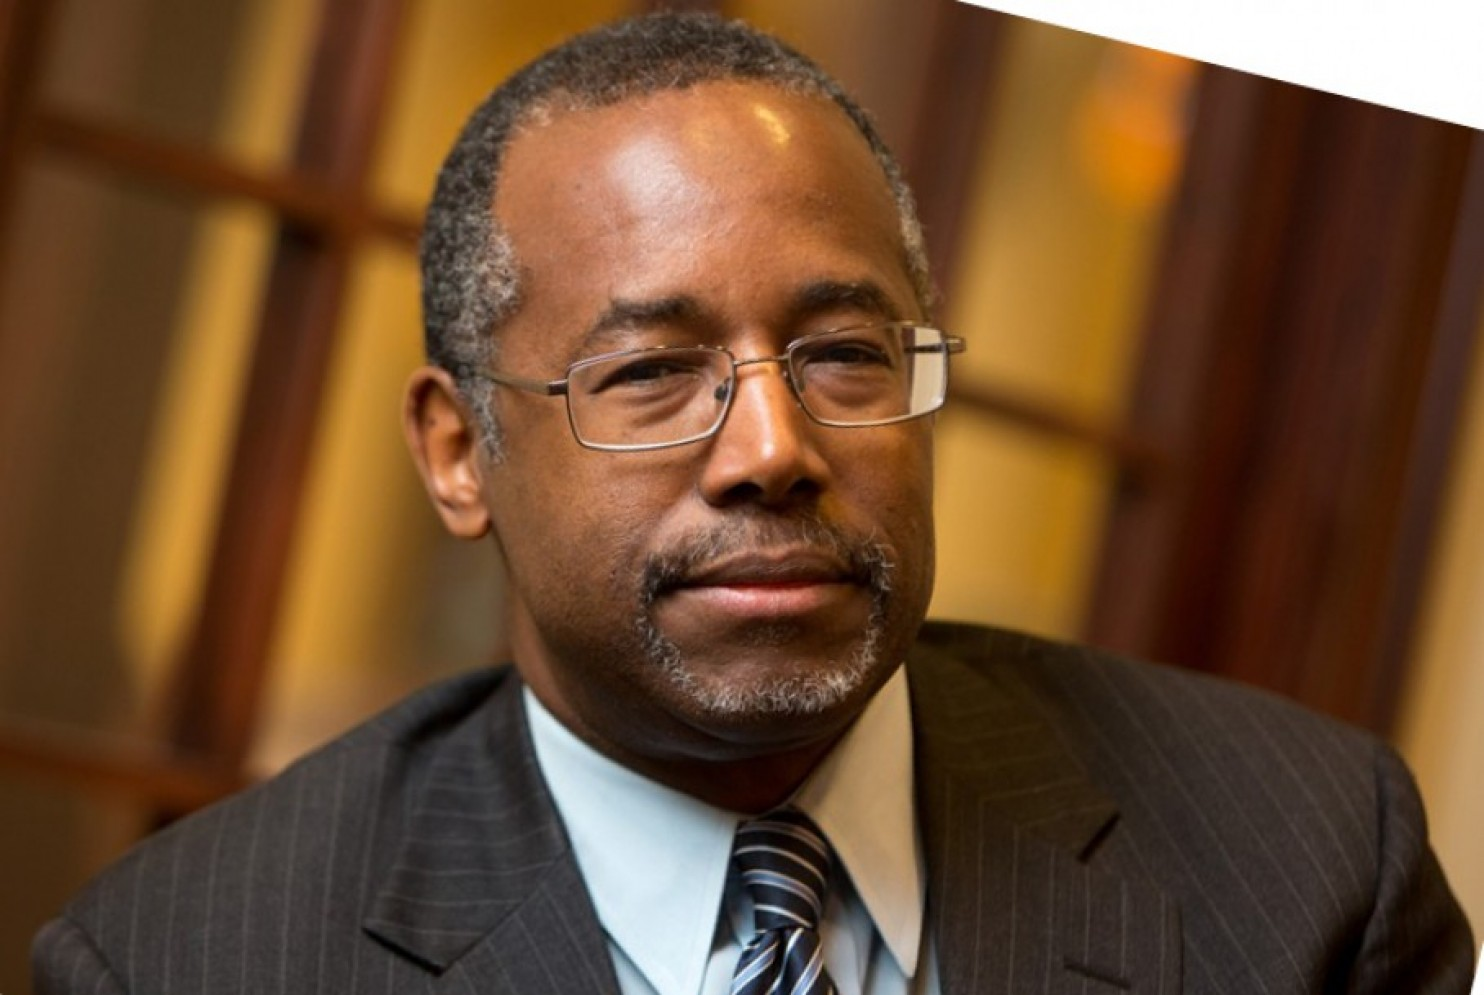 Dr Ben Carson identifies Hilary Clinton as a follower of Lucifer and as an associate of Jesuit trained Saul Alinsky